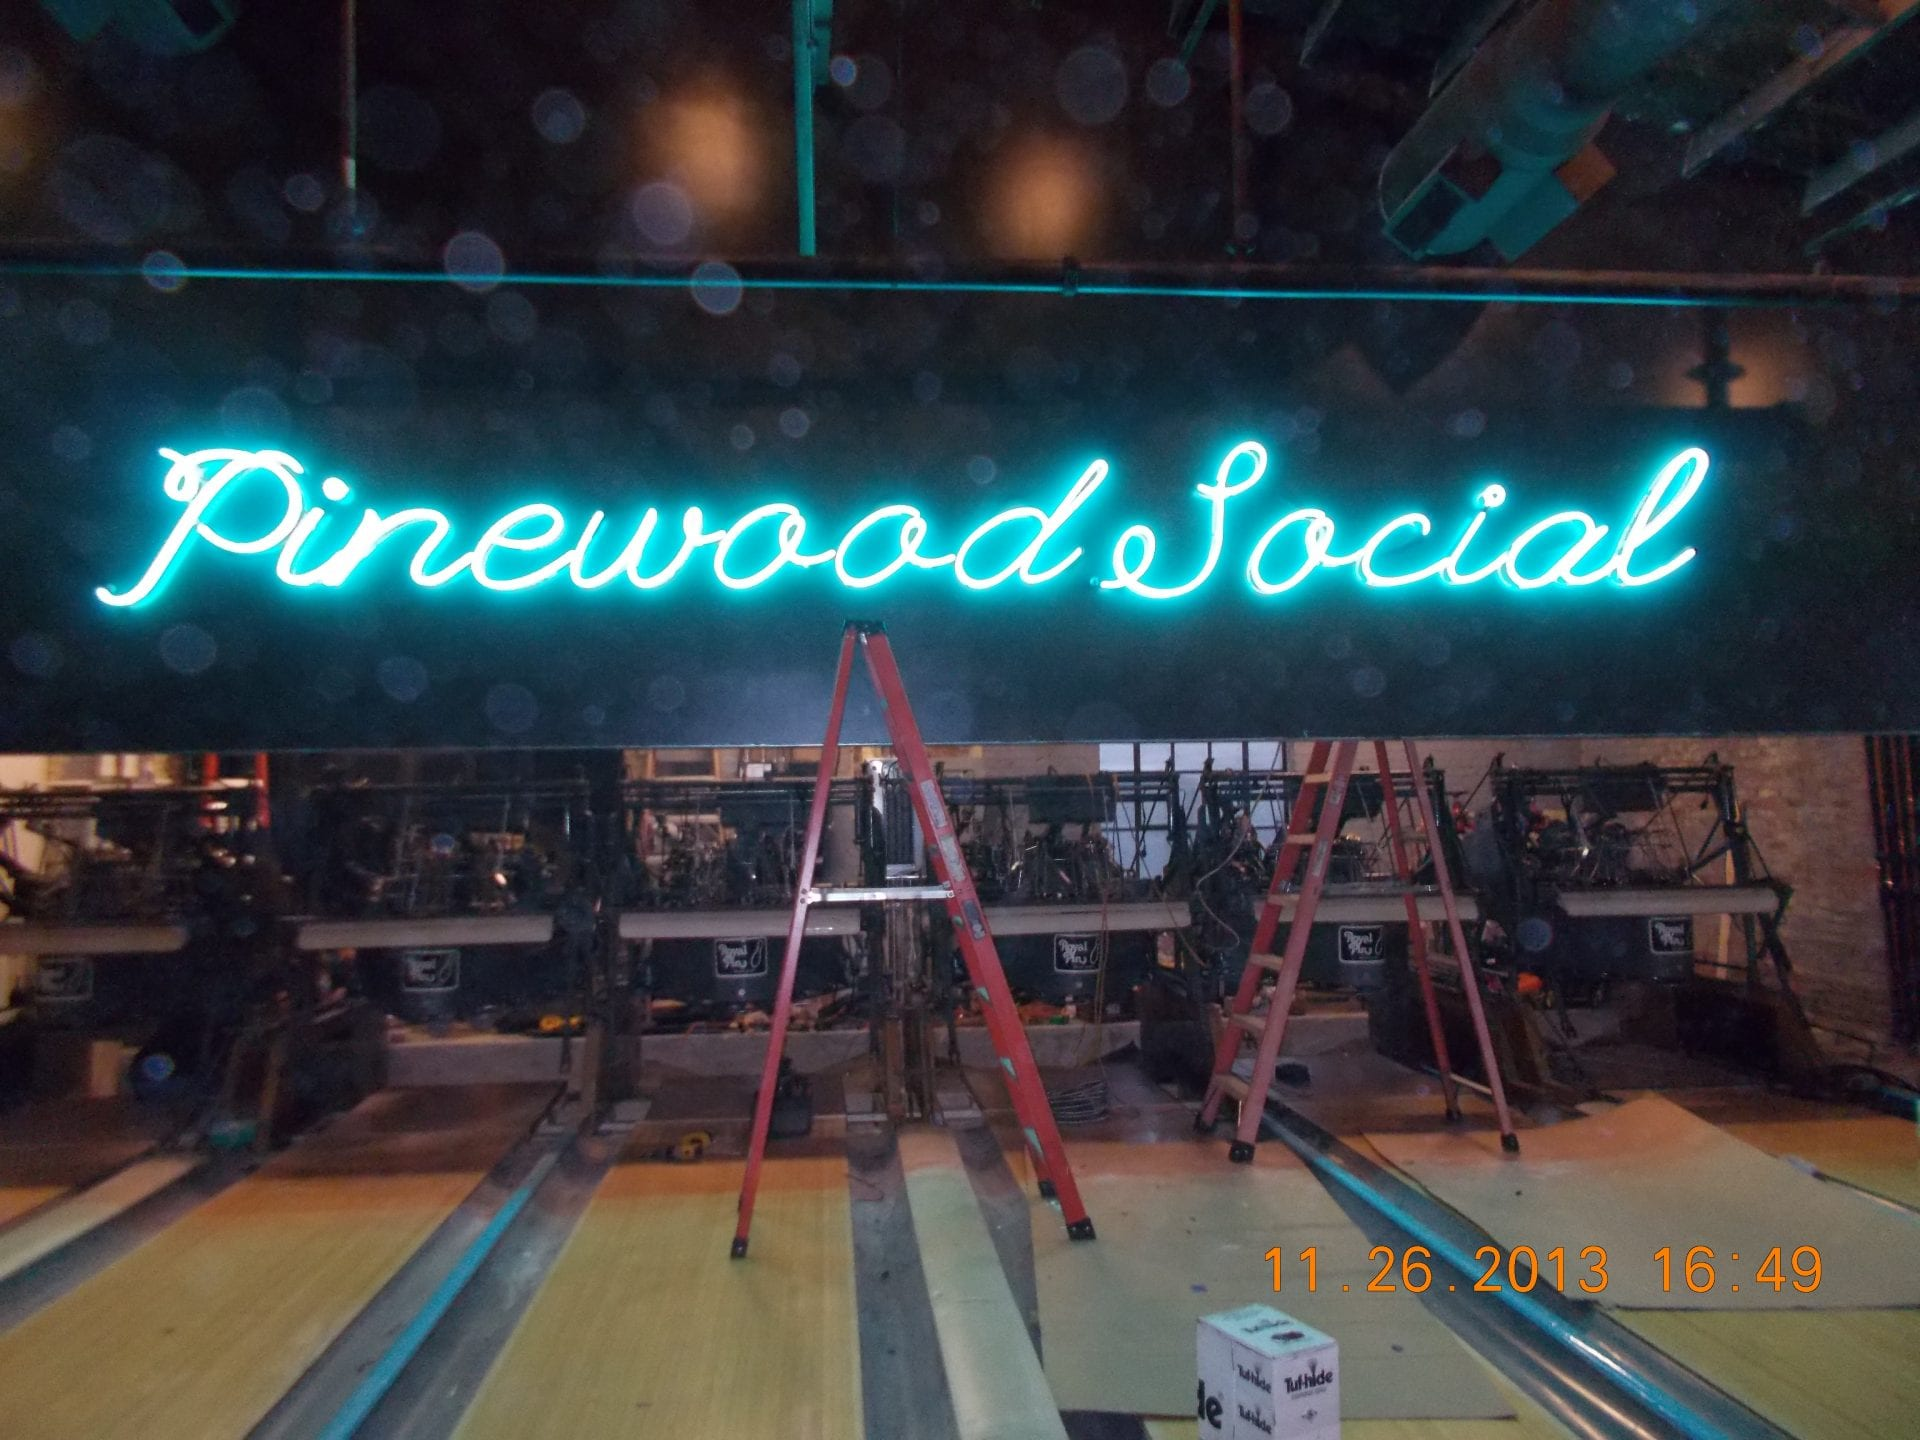 pinewood social bowling alley sign - Joslin & Sons Signs